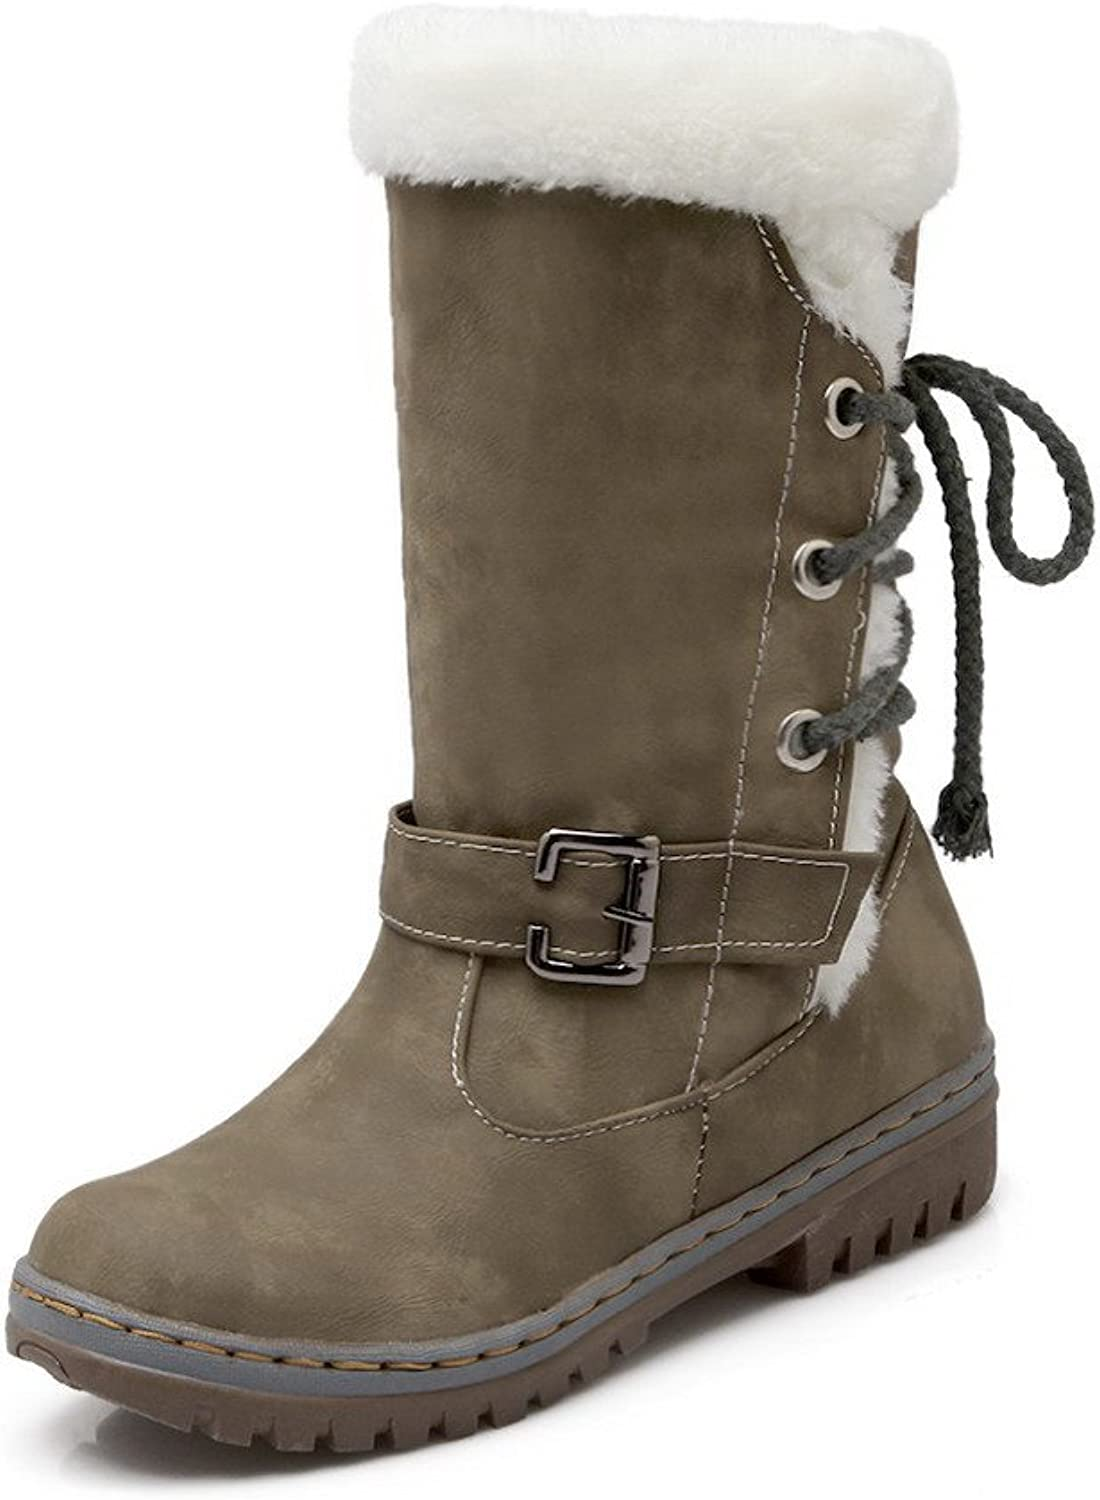 WeiPoot Women's Low-Heels Frosted Low-top Solid Pull-on Boots